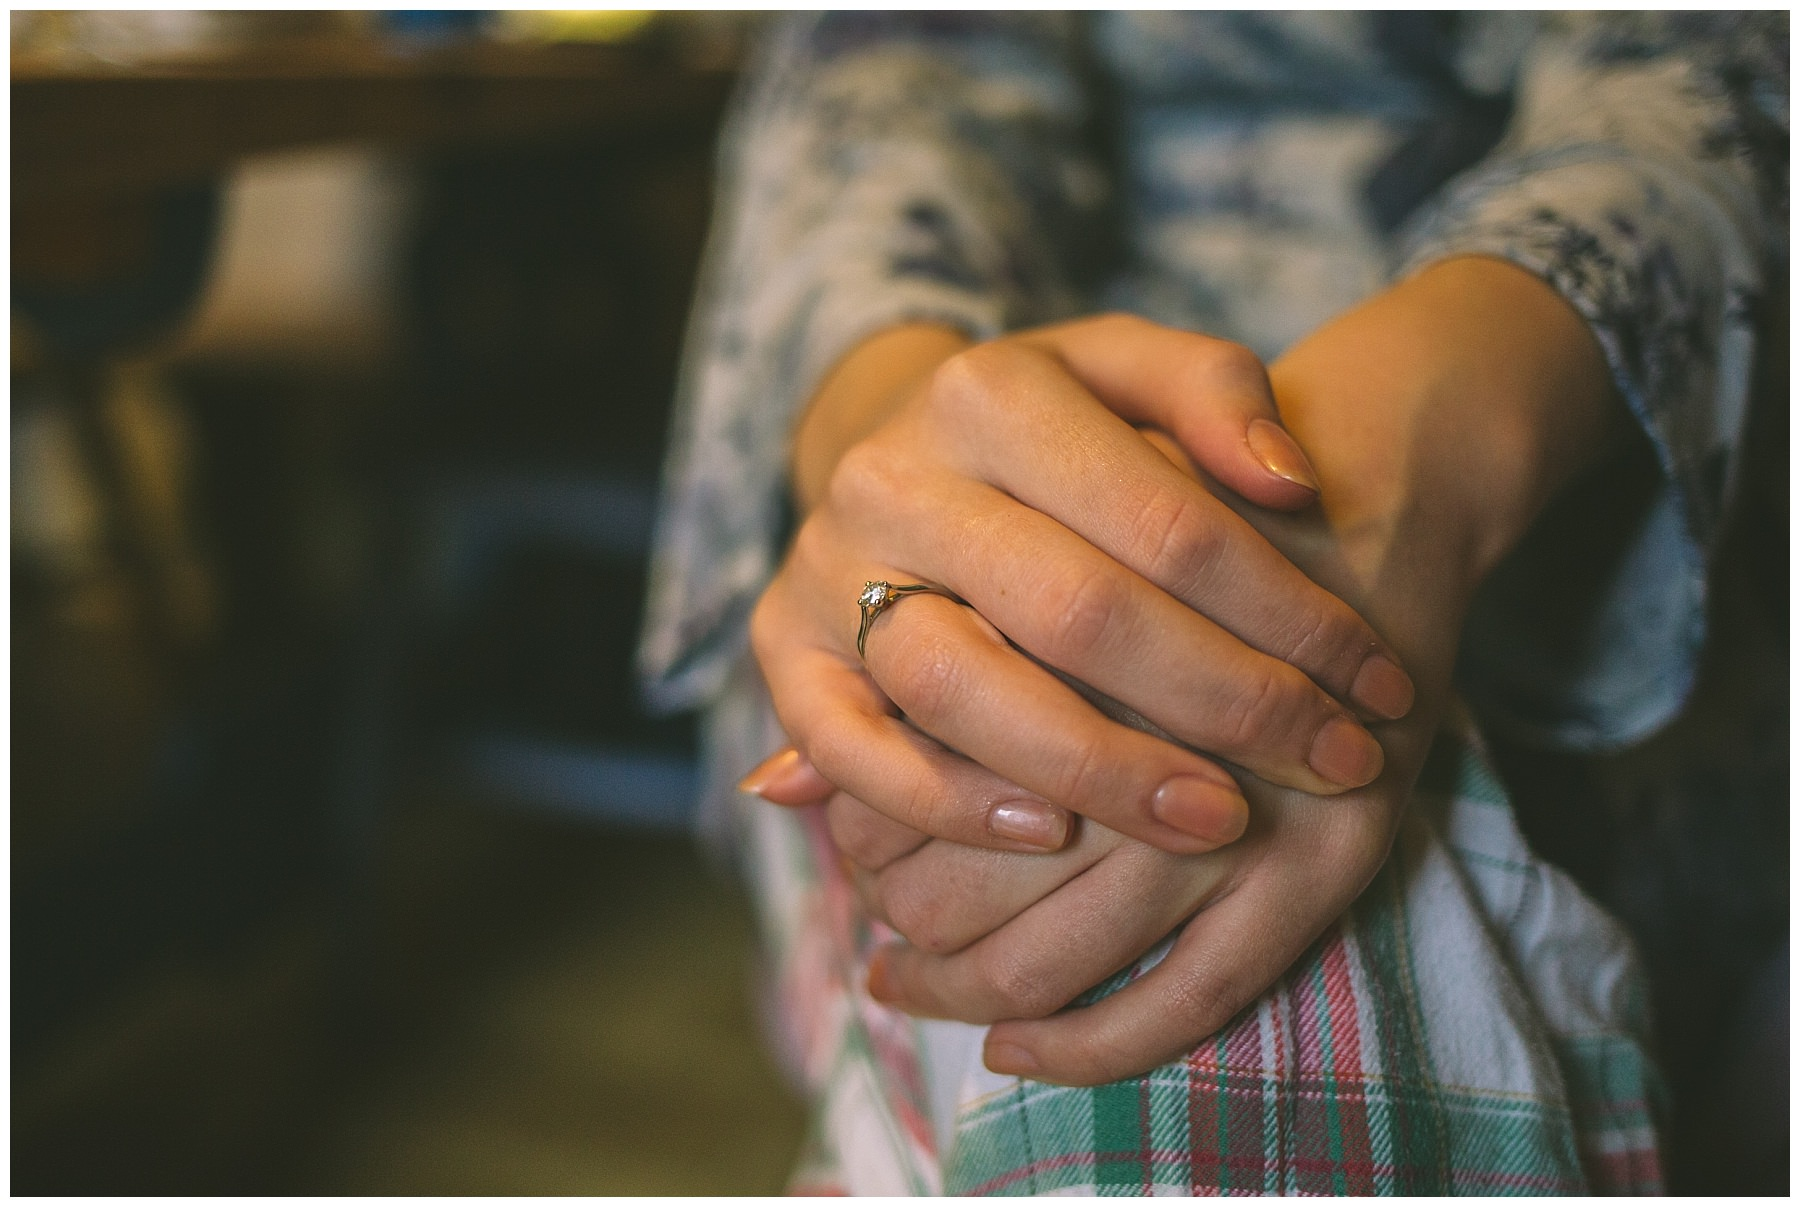 Engagement ring worn by nervous bride